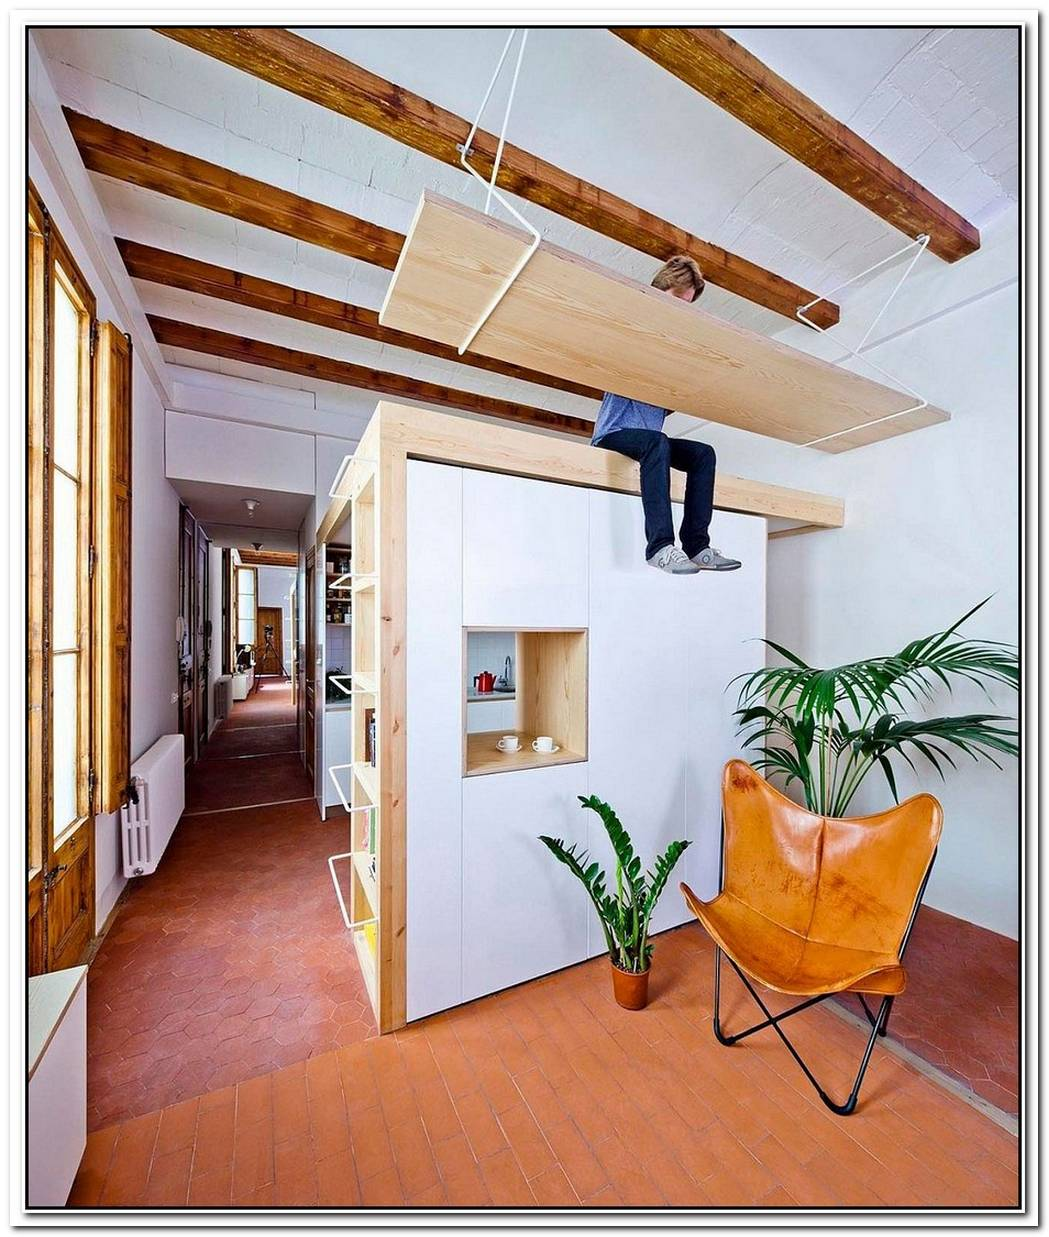 Think VerticalSpaceSavvy Kitchen And Mezzanine In Small Barcelona Apartment